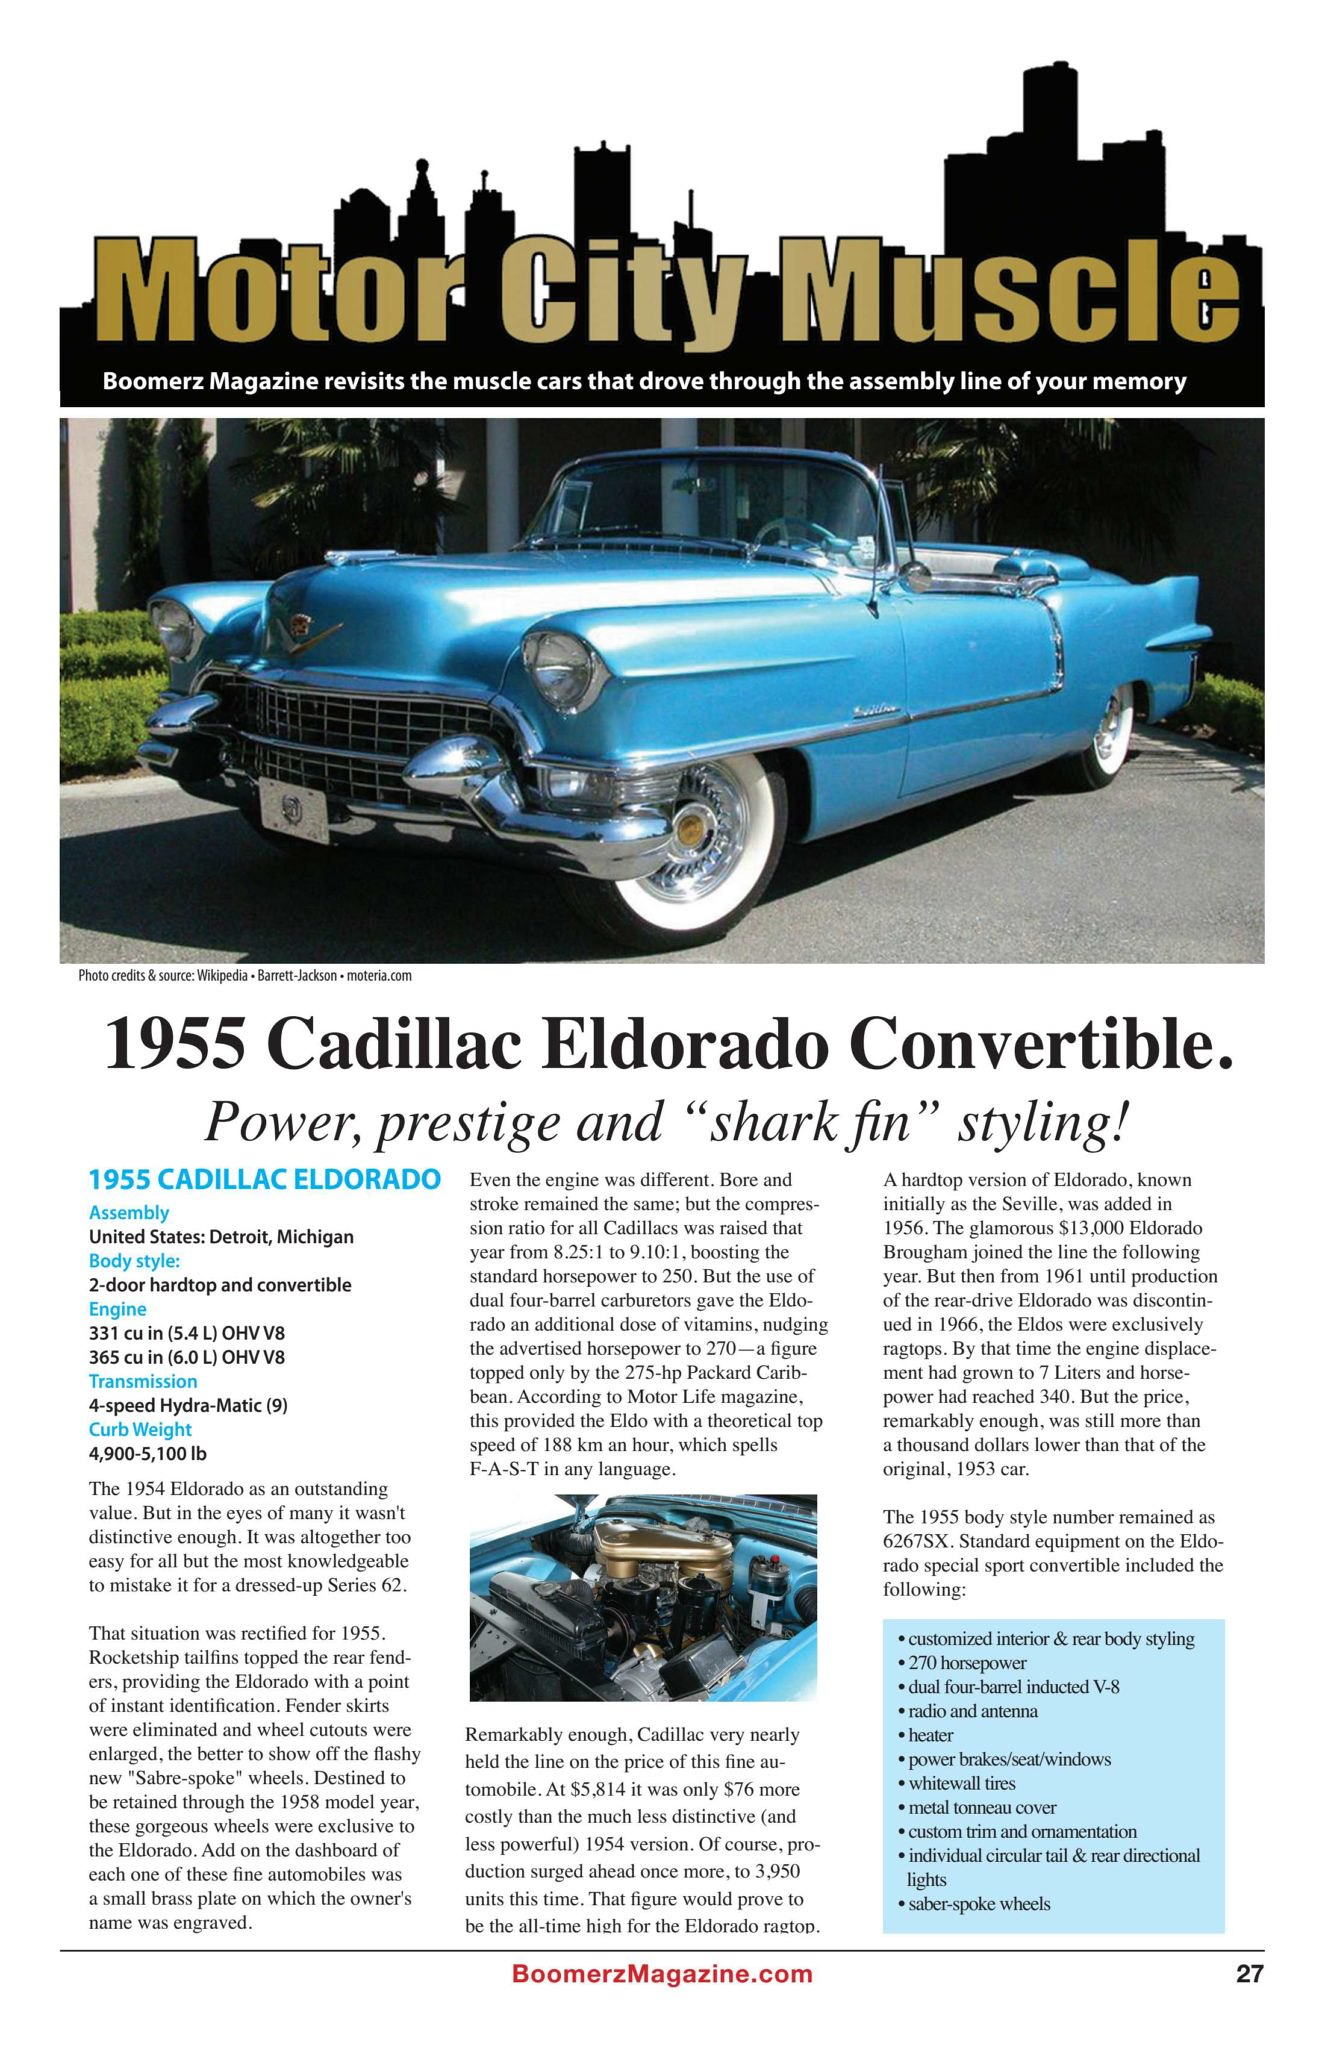 Boomerz Magazine 2018 November Motor City Muscle 1955 Cadillac Eldorado Convertible